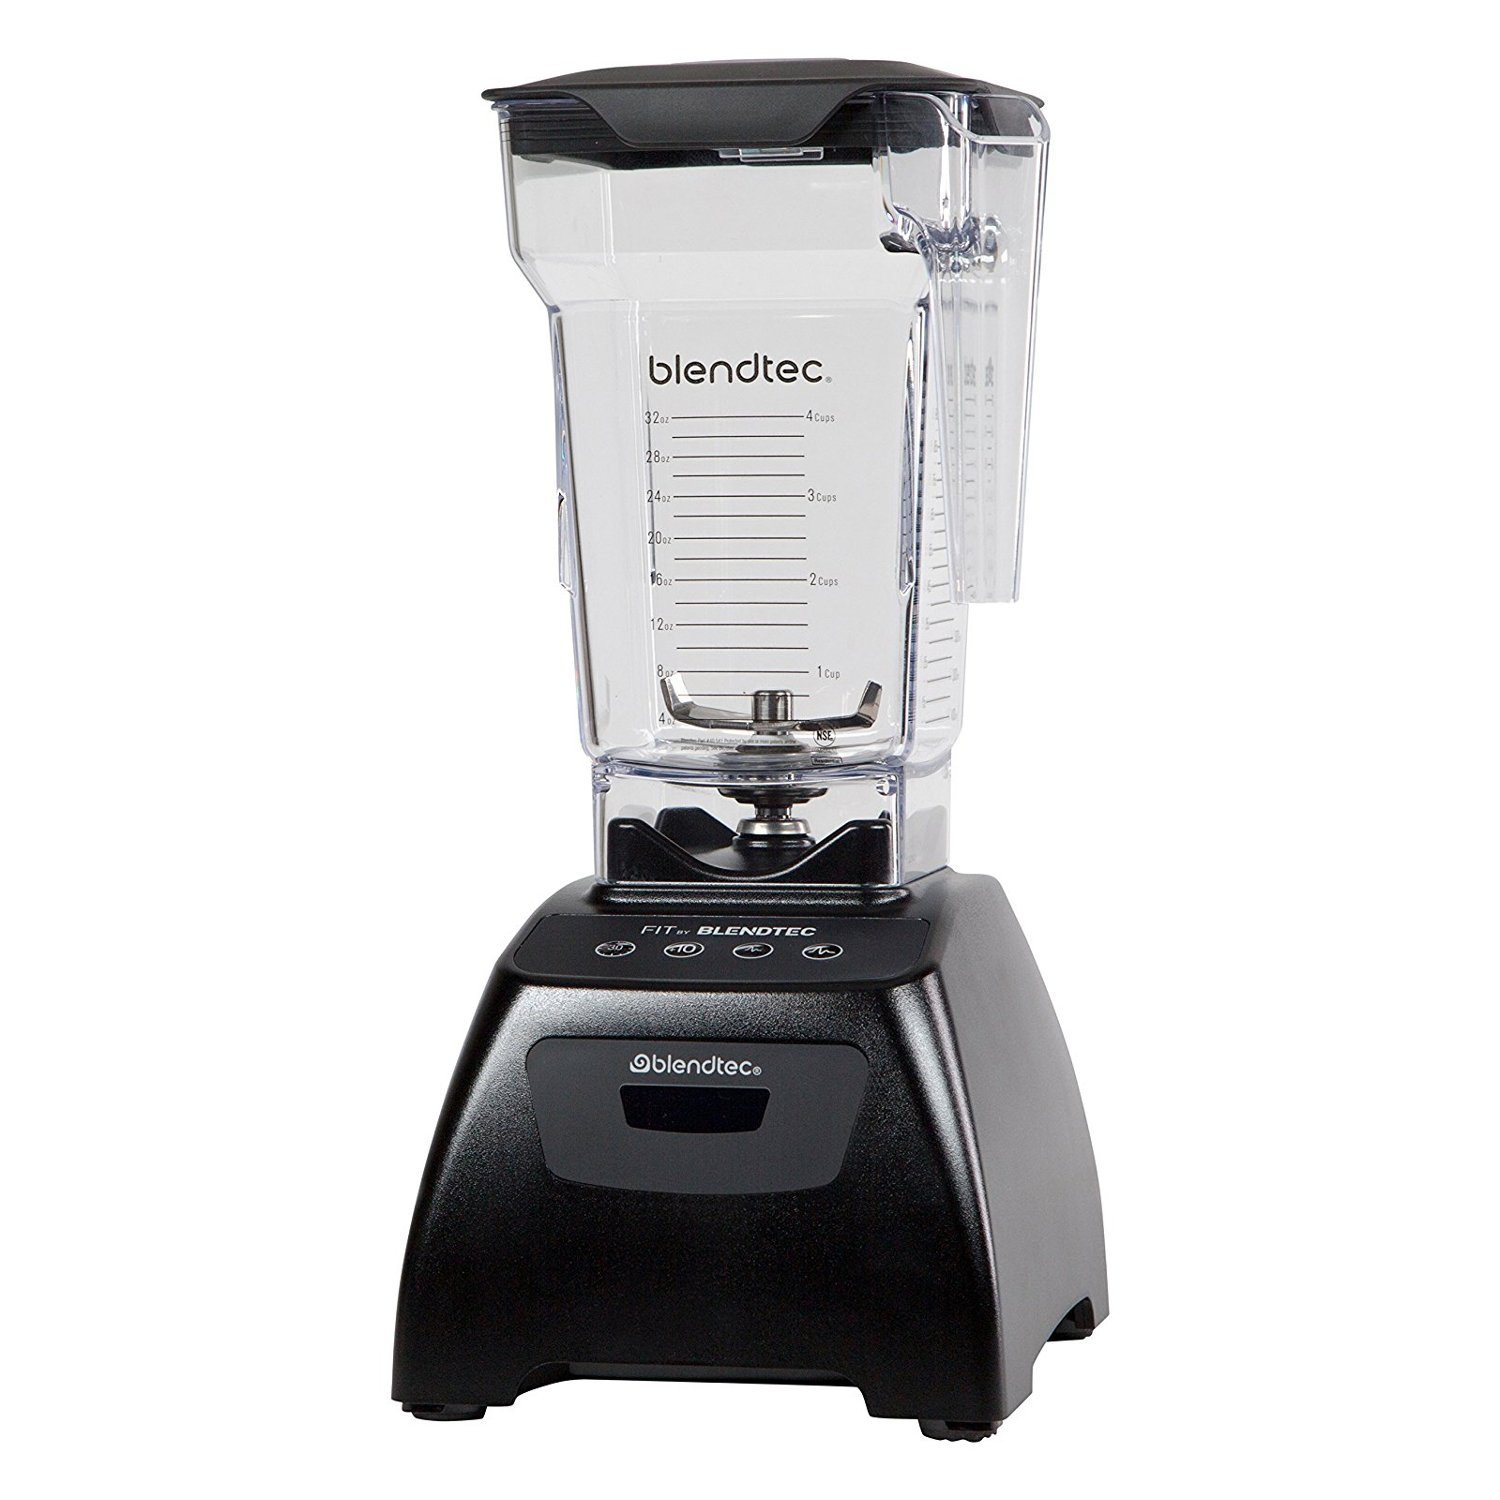 Blendtec Fit Black Blender with FourSide Jar